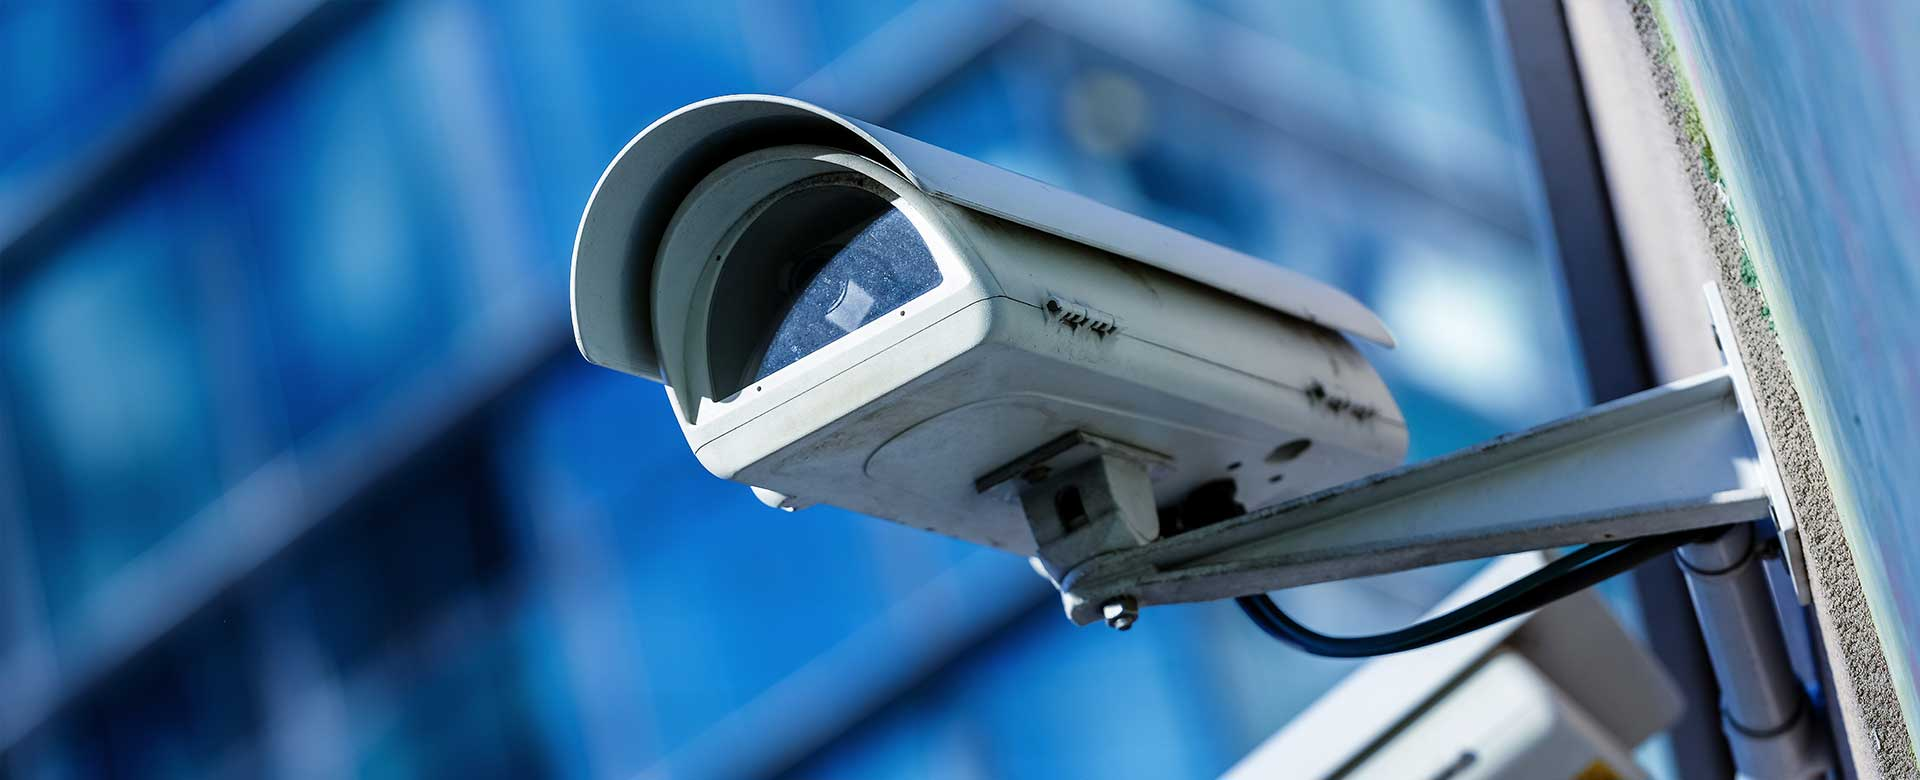 World class CCTV systems for complete security